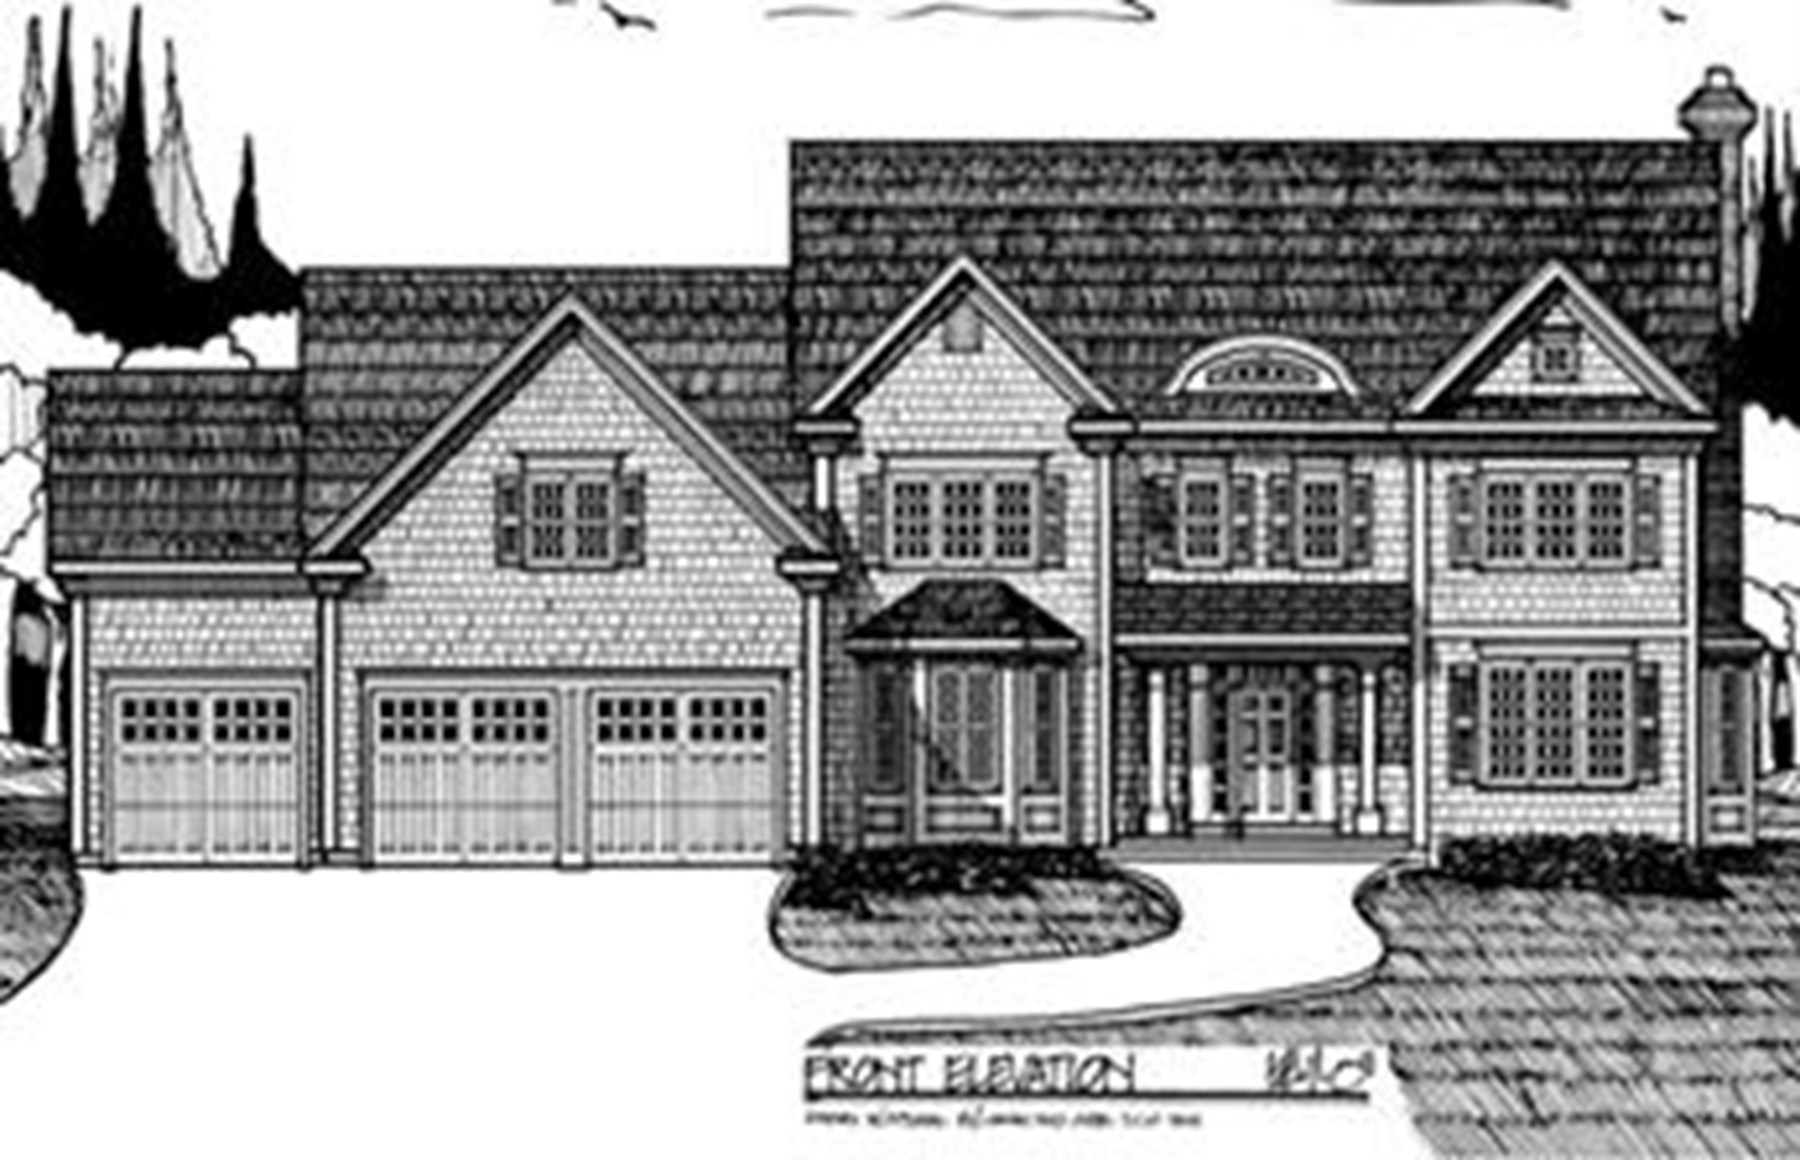 Casa Unifamiliar por un Venta en Highland Park New Construction Lot 18 Stoney Brook Road Hopkinton, Massachusetts 01748 Estados Unidos